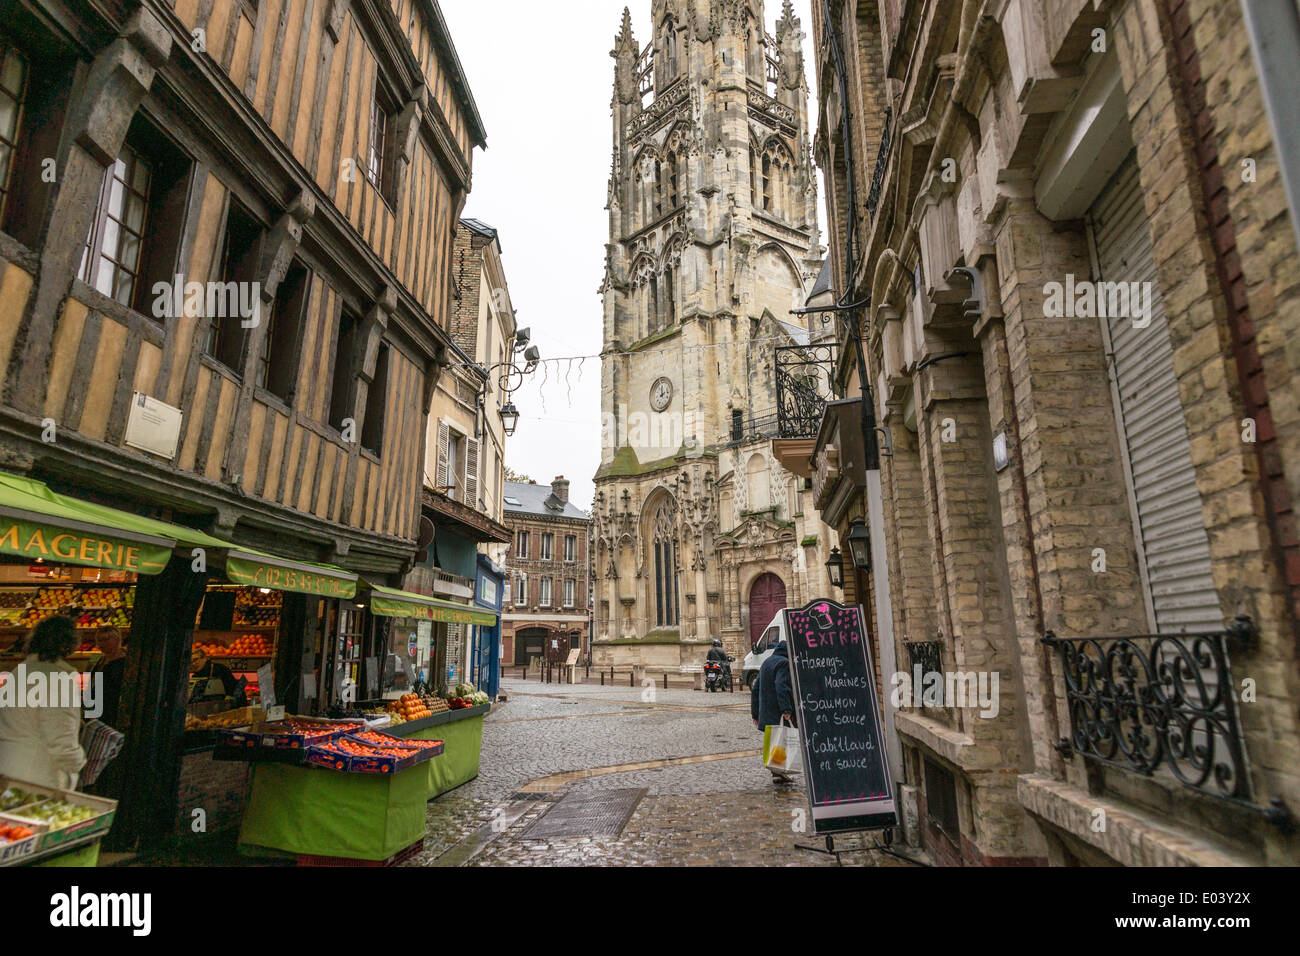 St. Joseph's Church, Le Havre, is a Roman Catholic church in Le Havre, France. - Stock Image